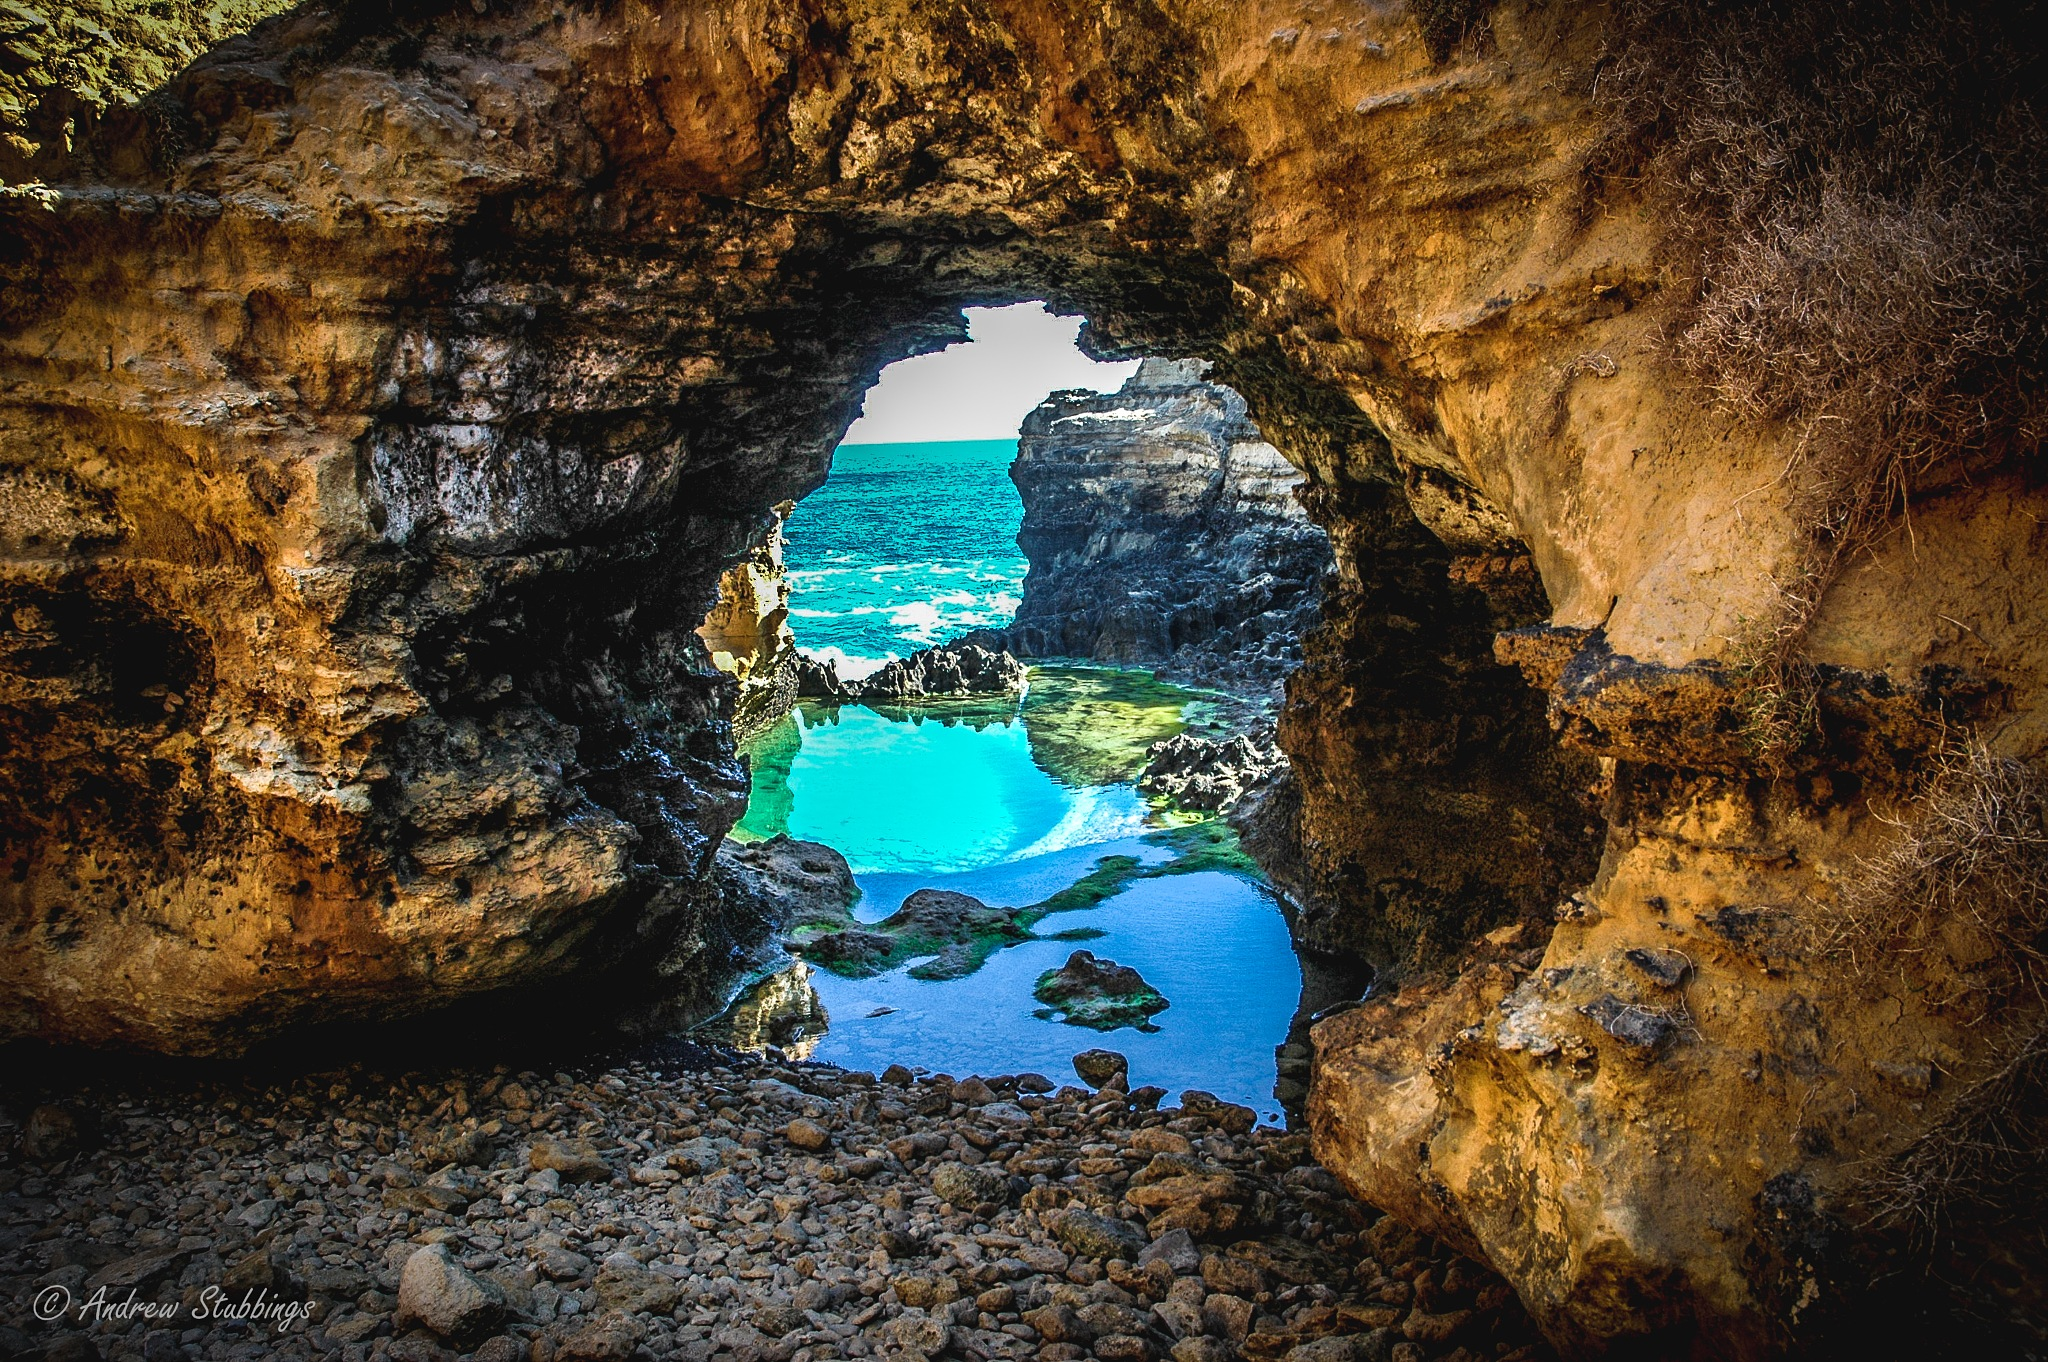 The Grotto by Andrew Stubbings